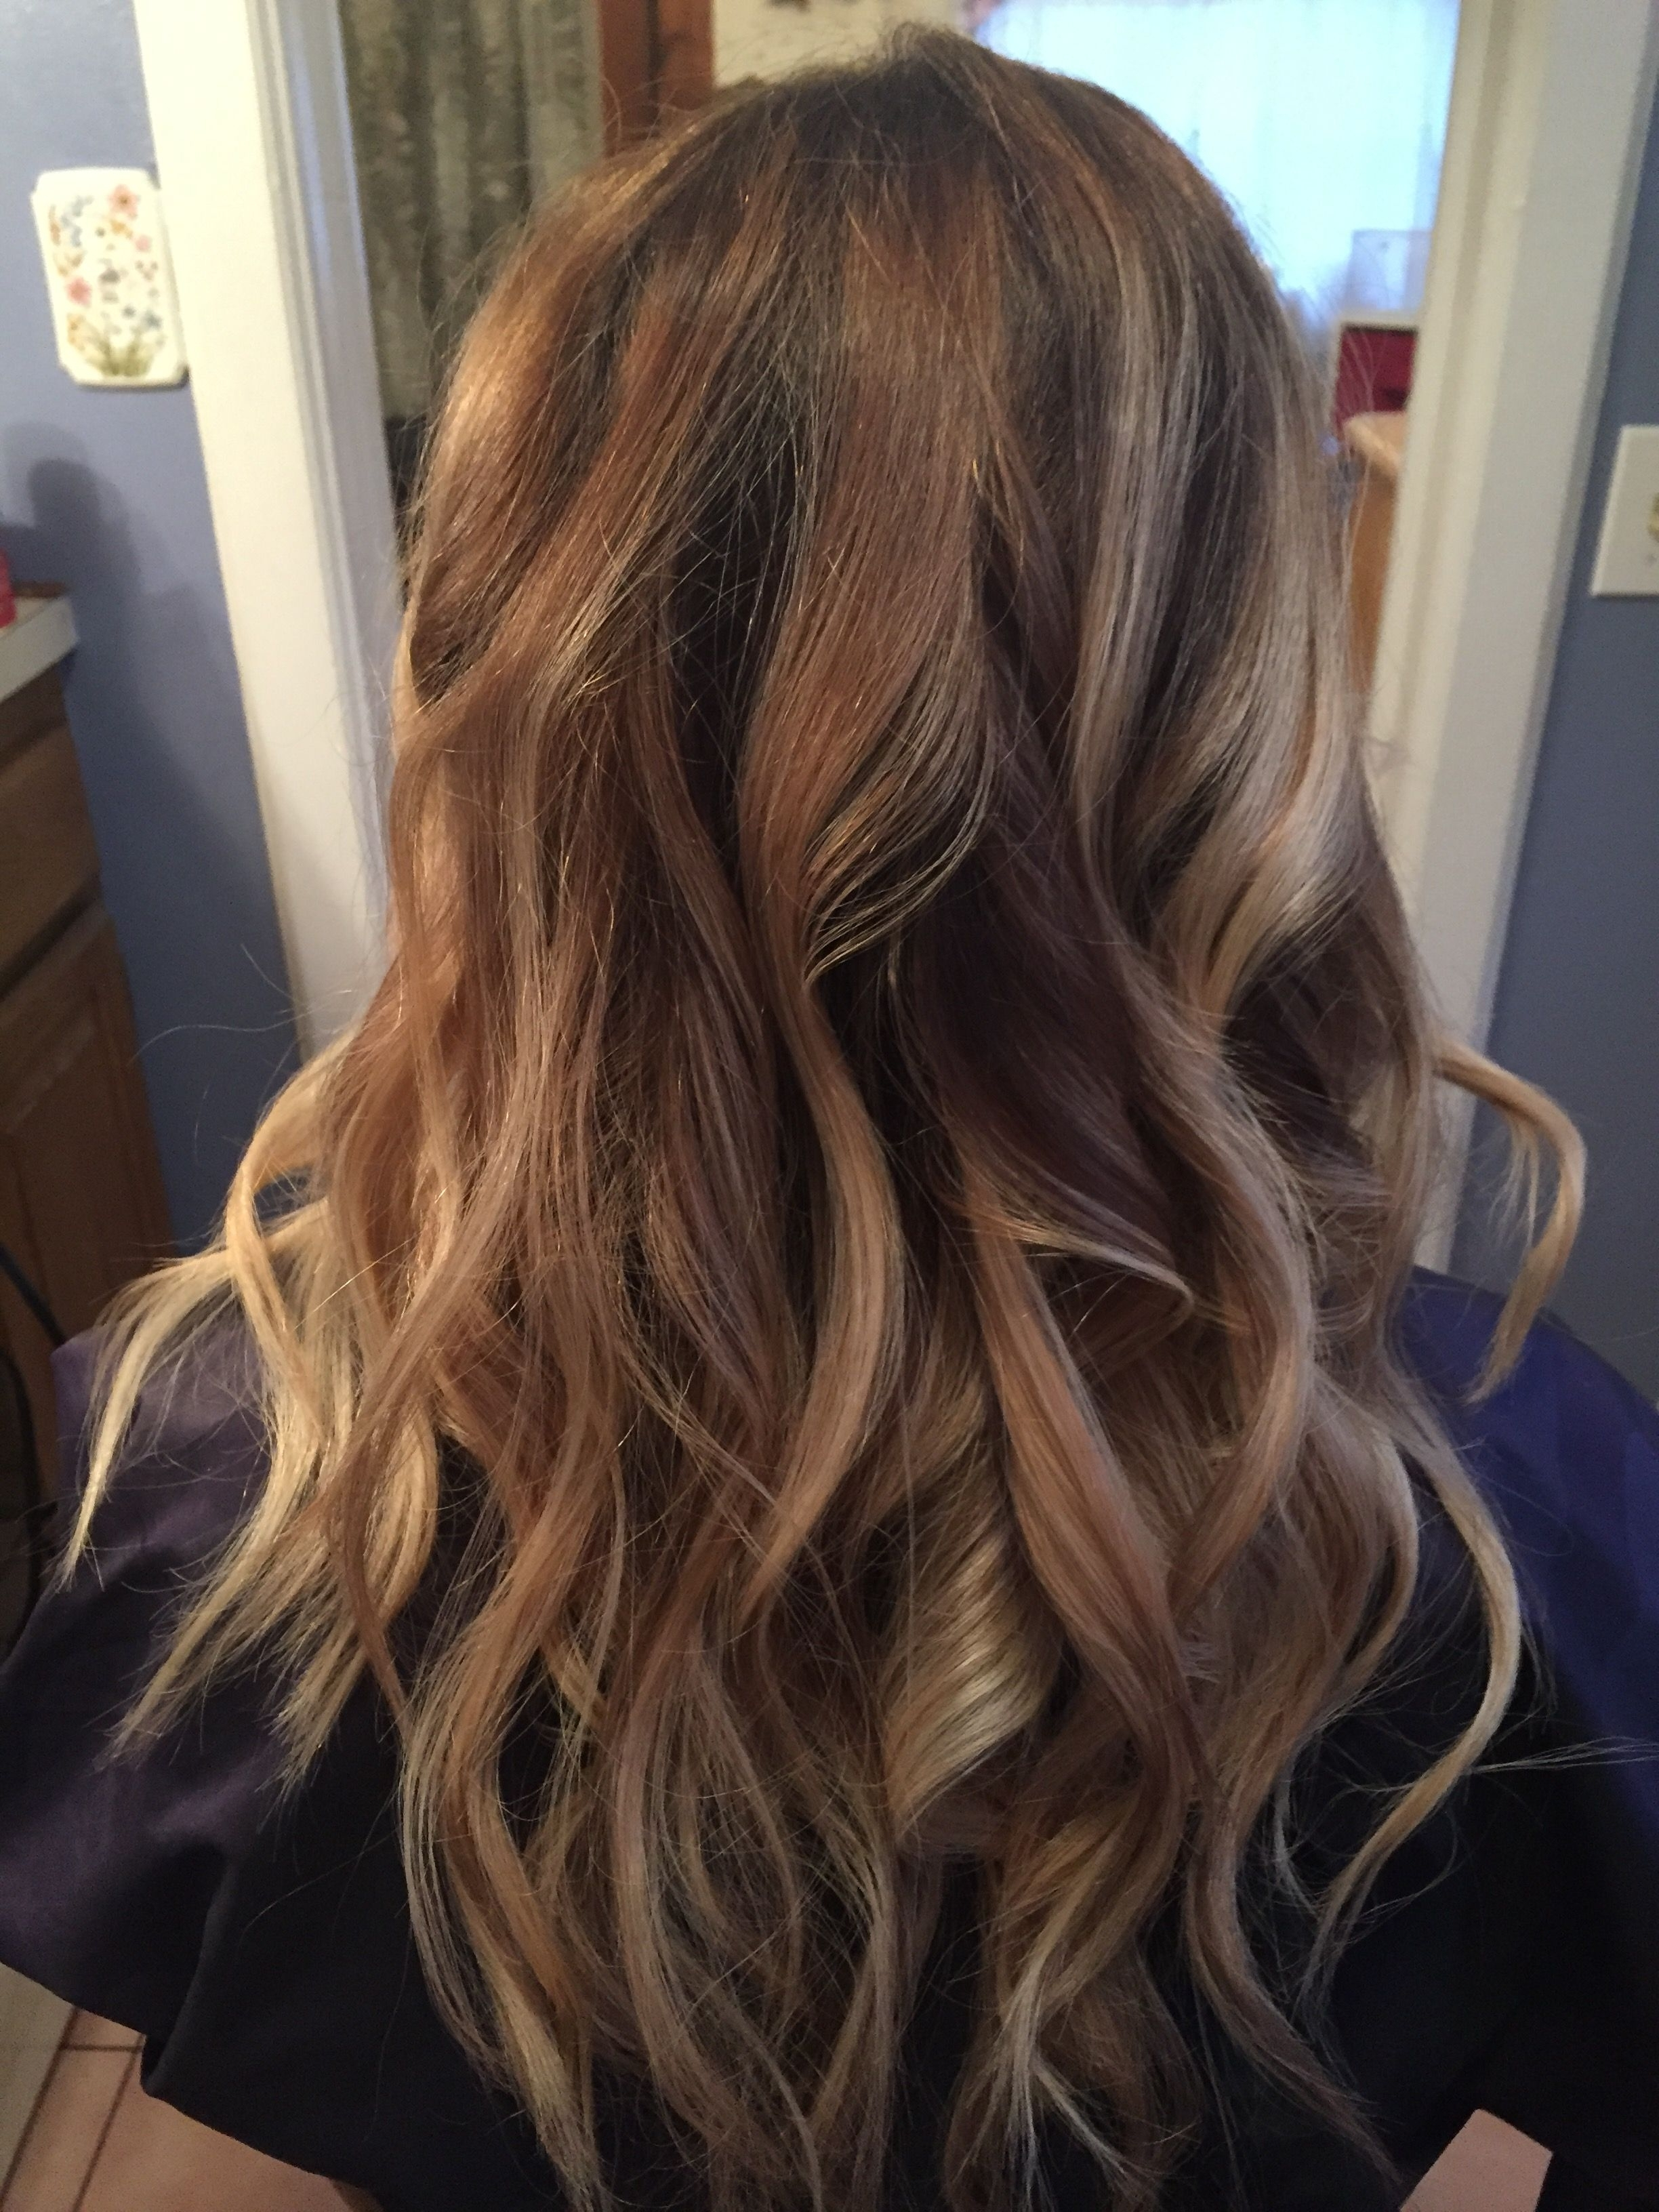 Hairstyles For 2017 Root Fade Into Blonde Hairstyles (View 10 of 20)